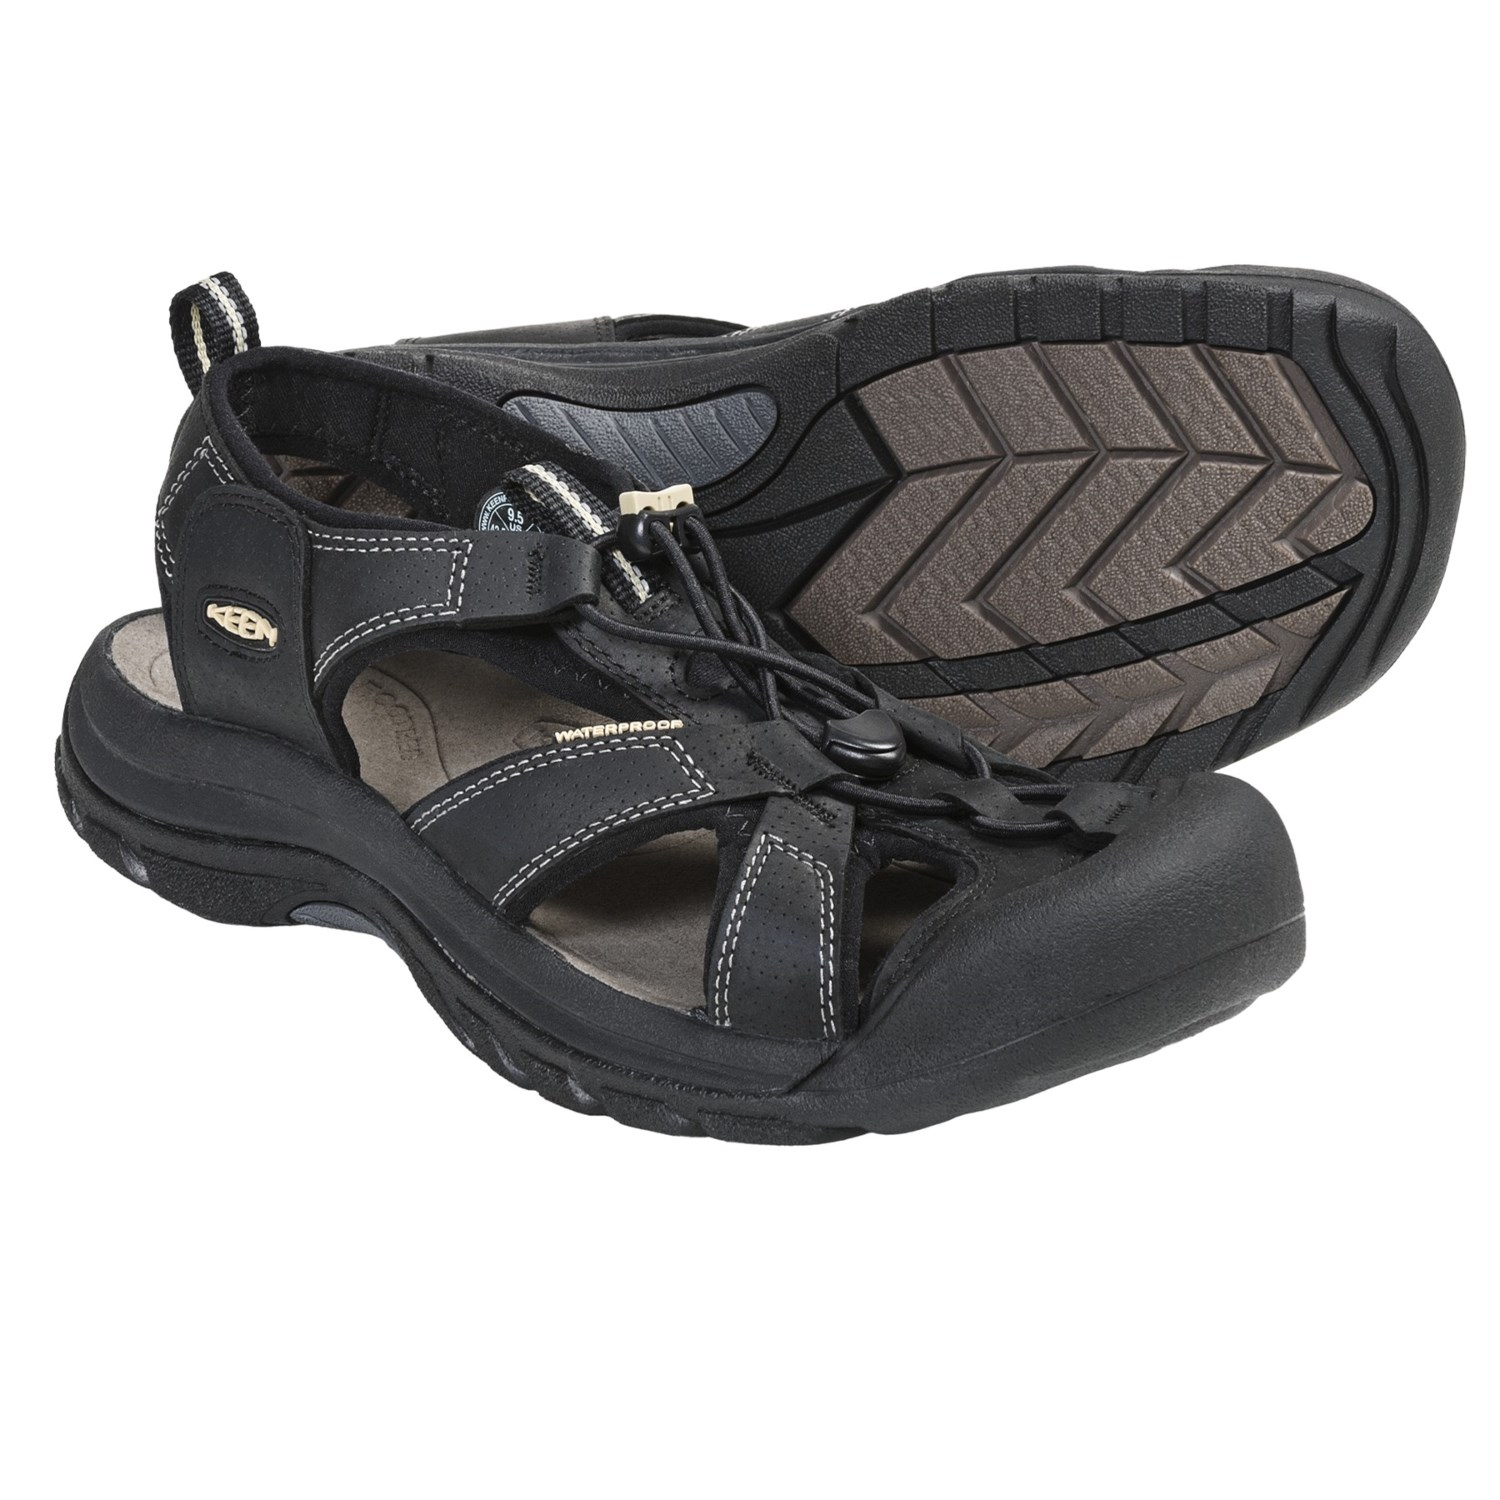 d7d0a5b35bb6 Keen Venice Sport Sandals (For Men) on PopScreen